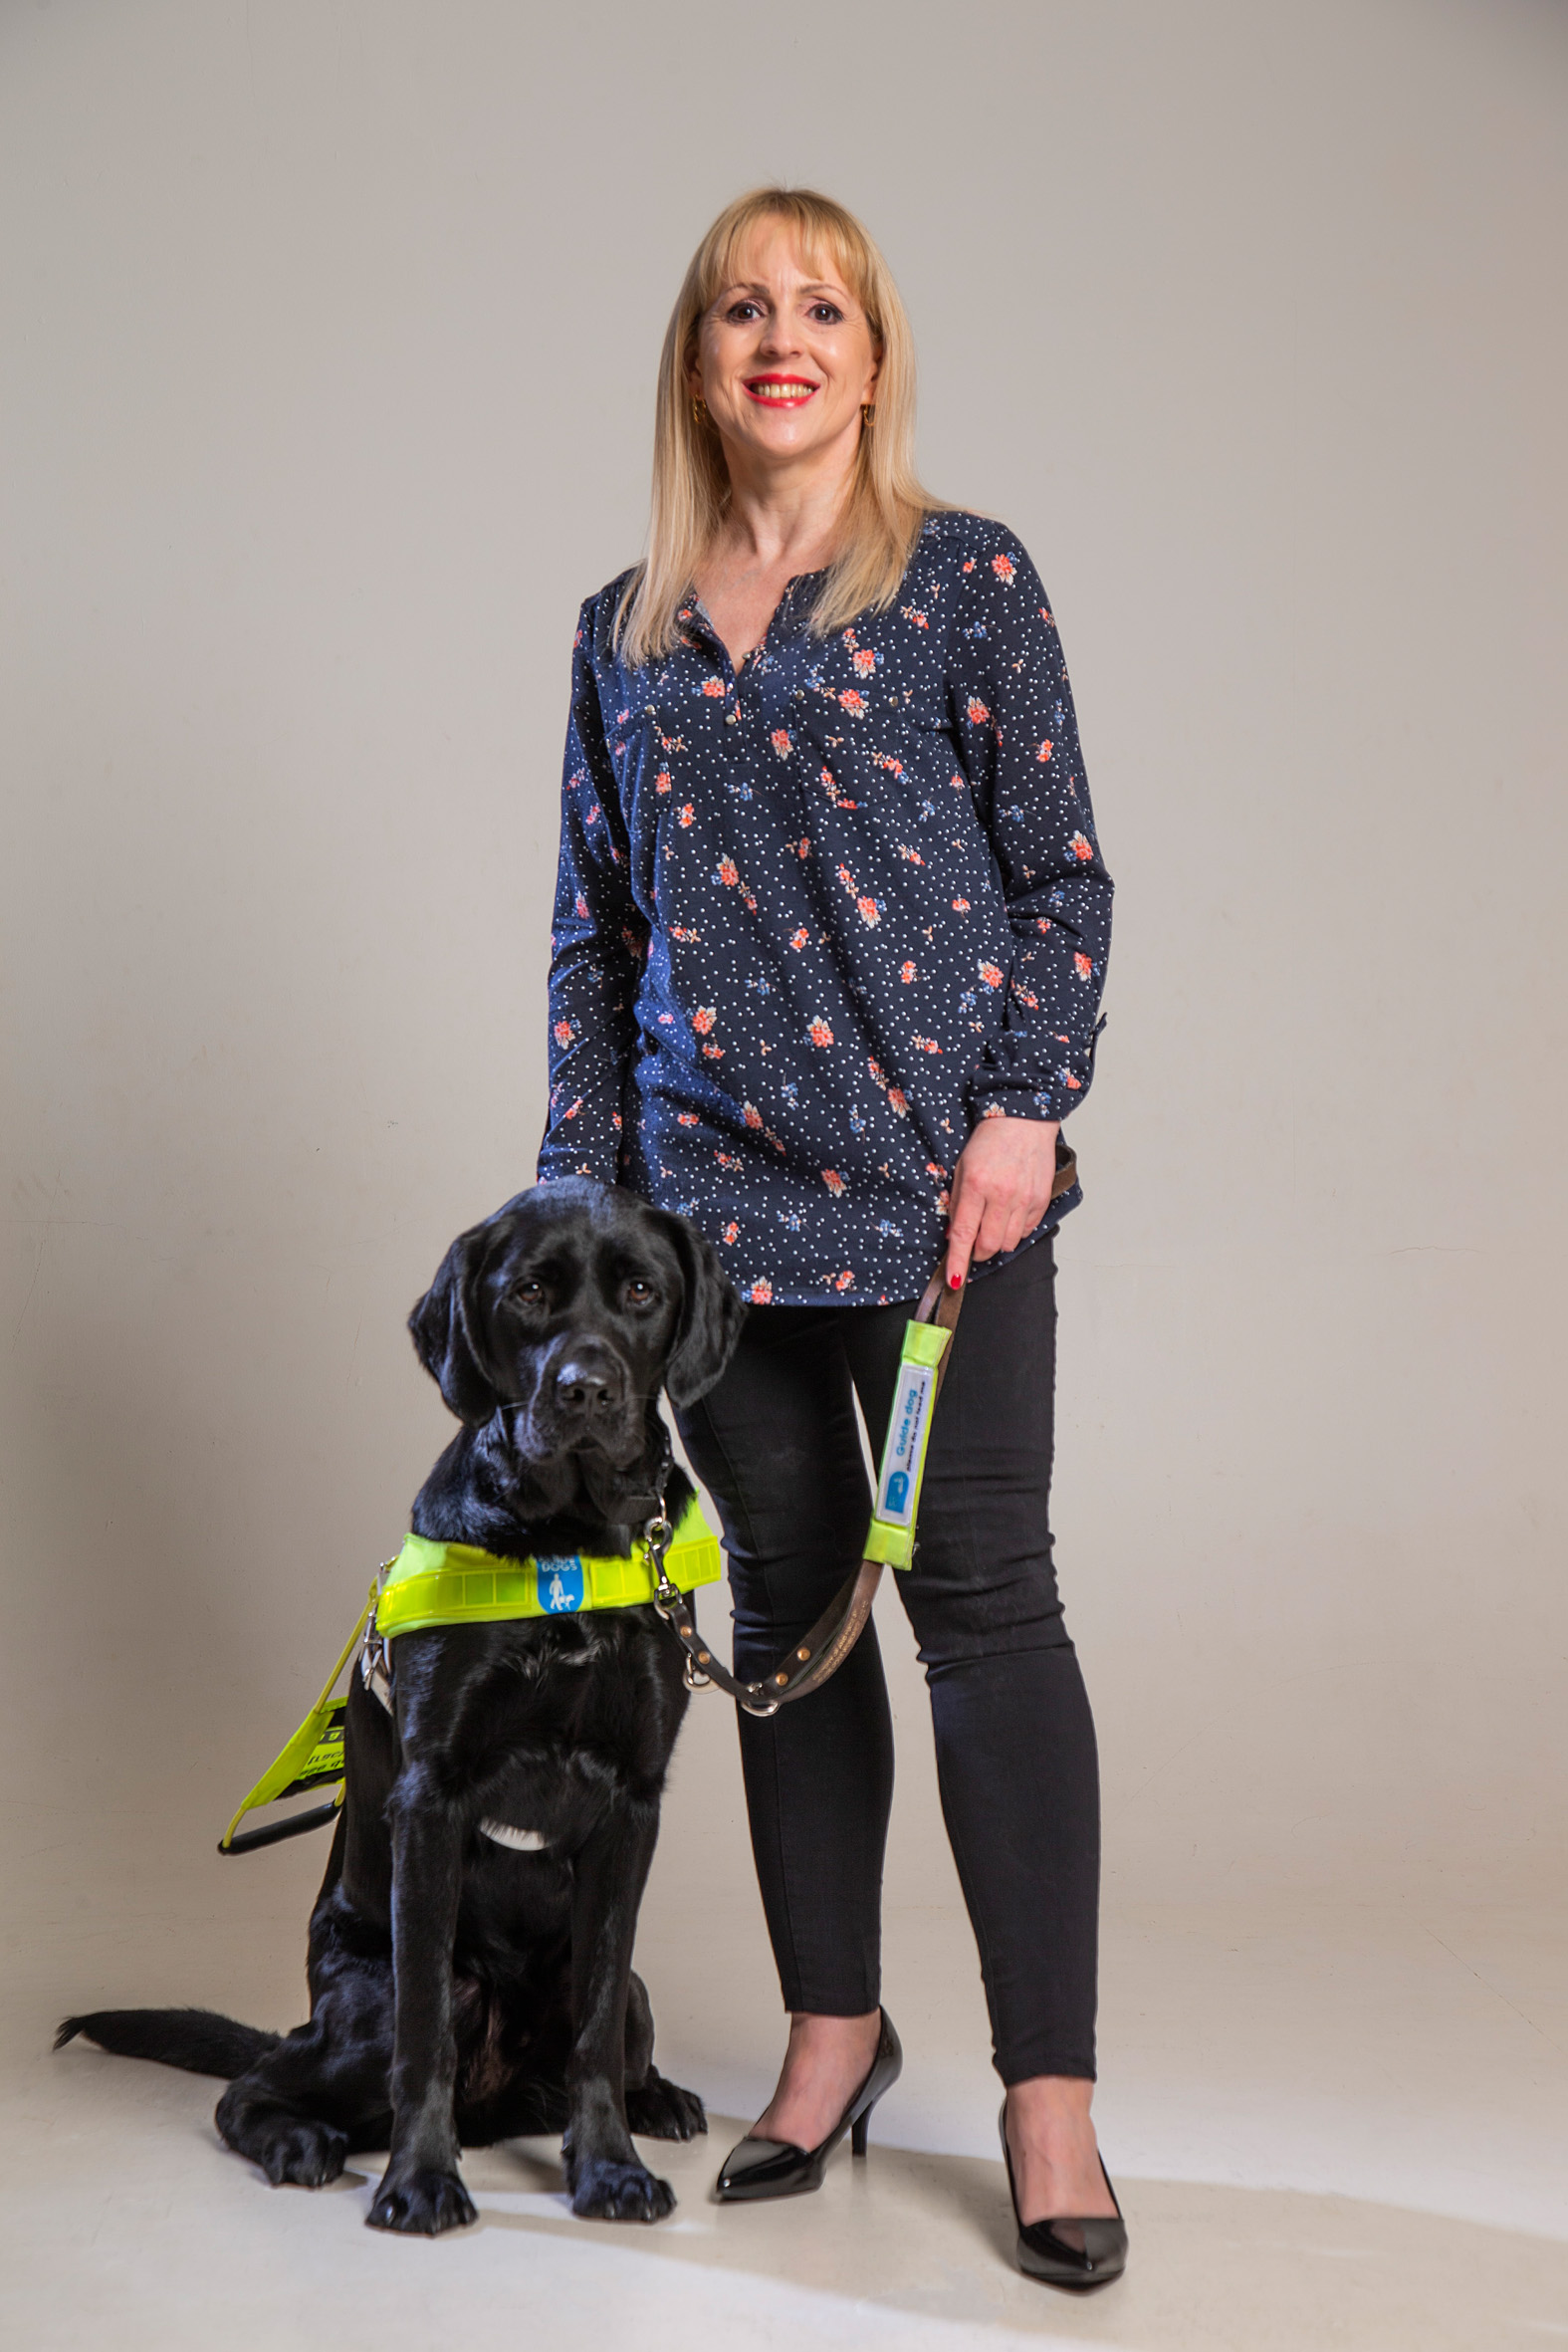 Lisa, Registered Blind, Zebedee Manageme